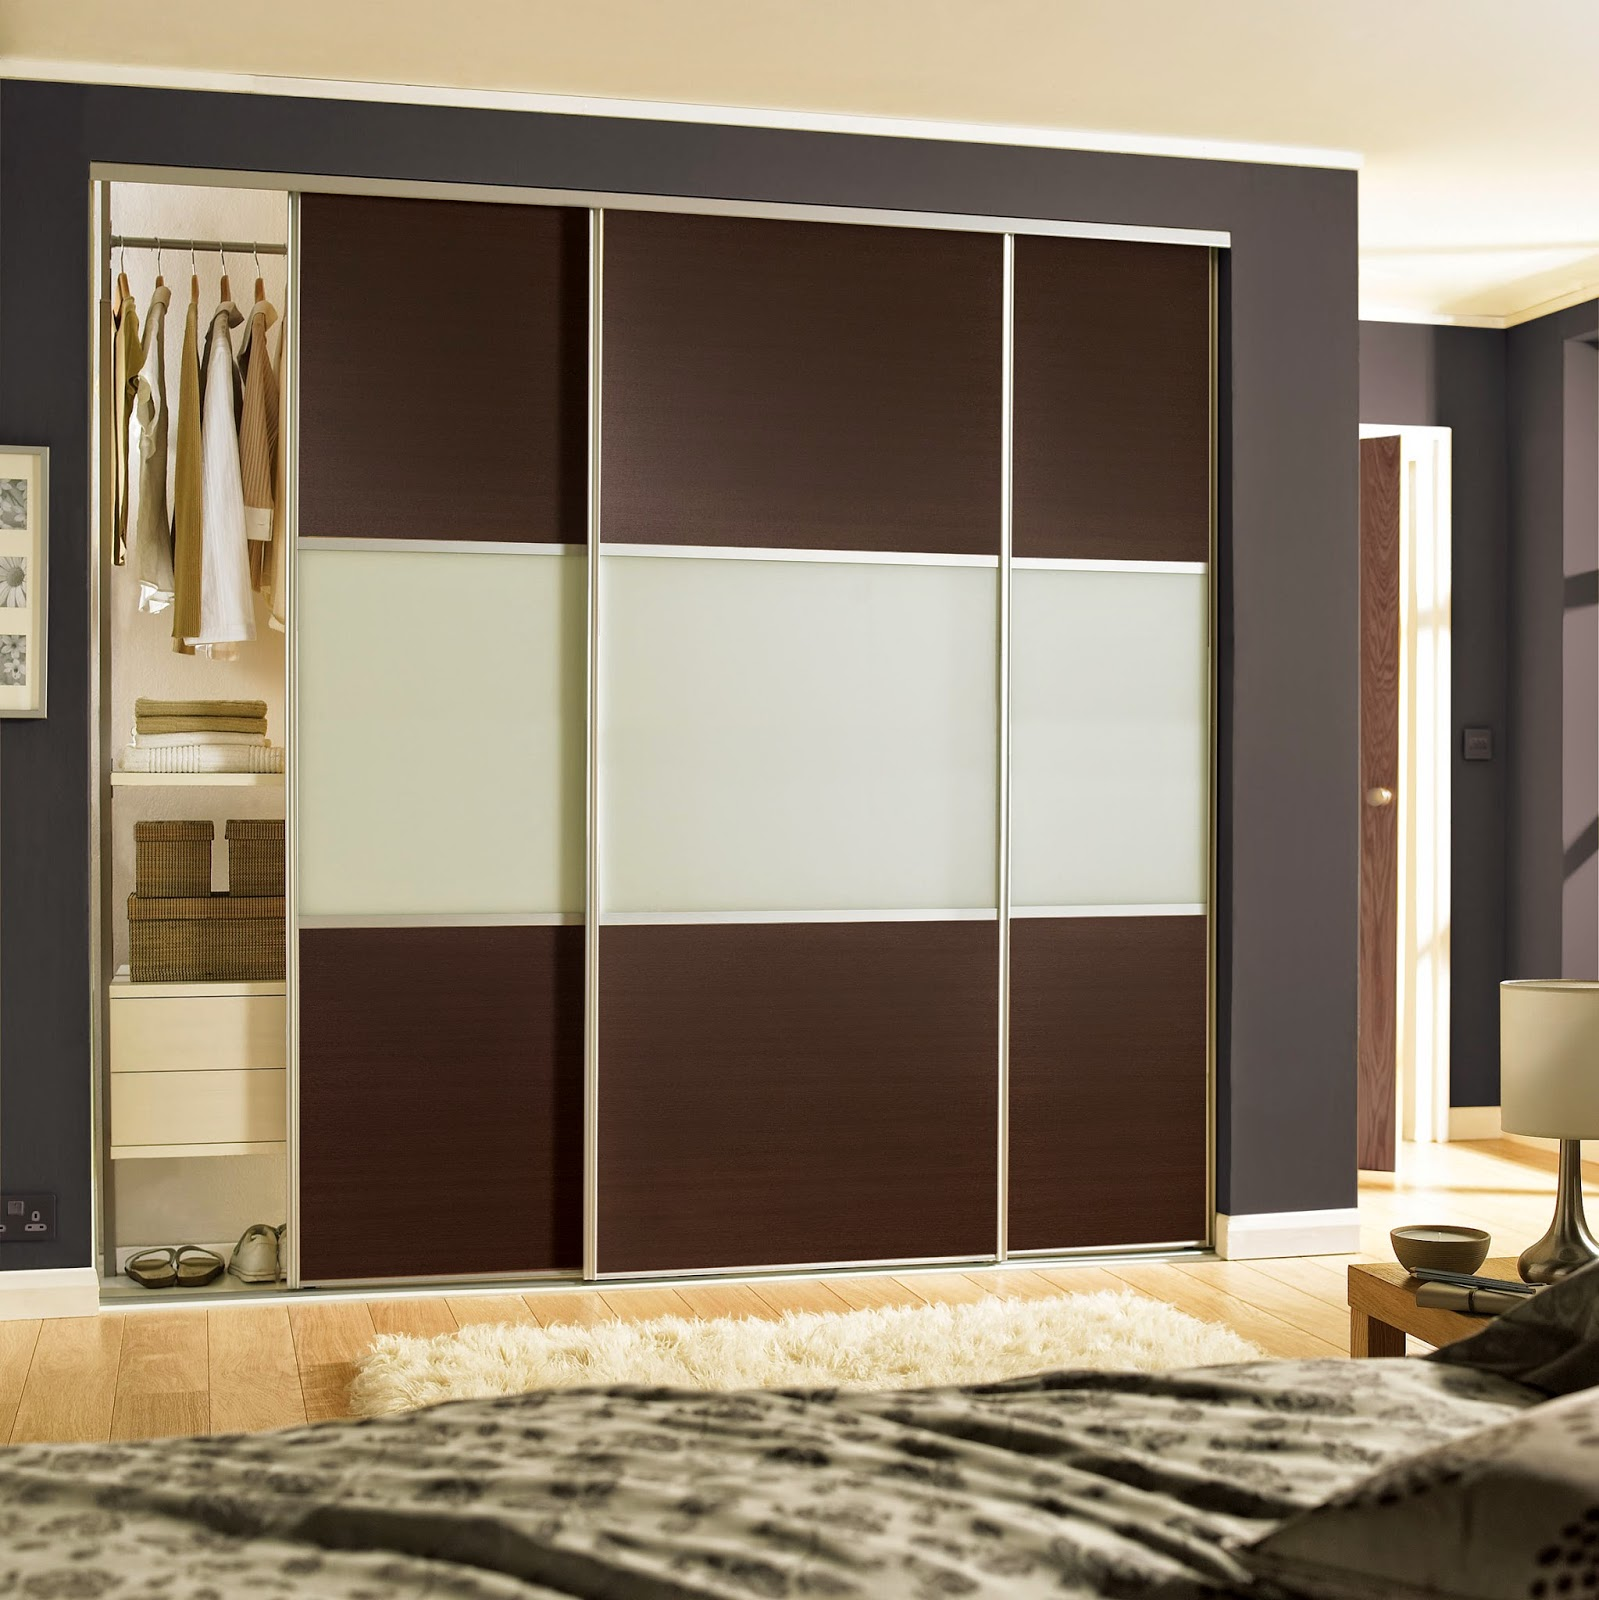 Klebefolien Für Kleiderschränke Bedrooms Plus Sliding Wardrobe Doors And Fittings How To